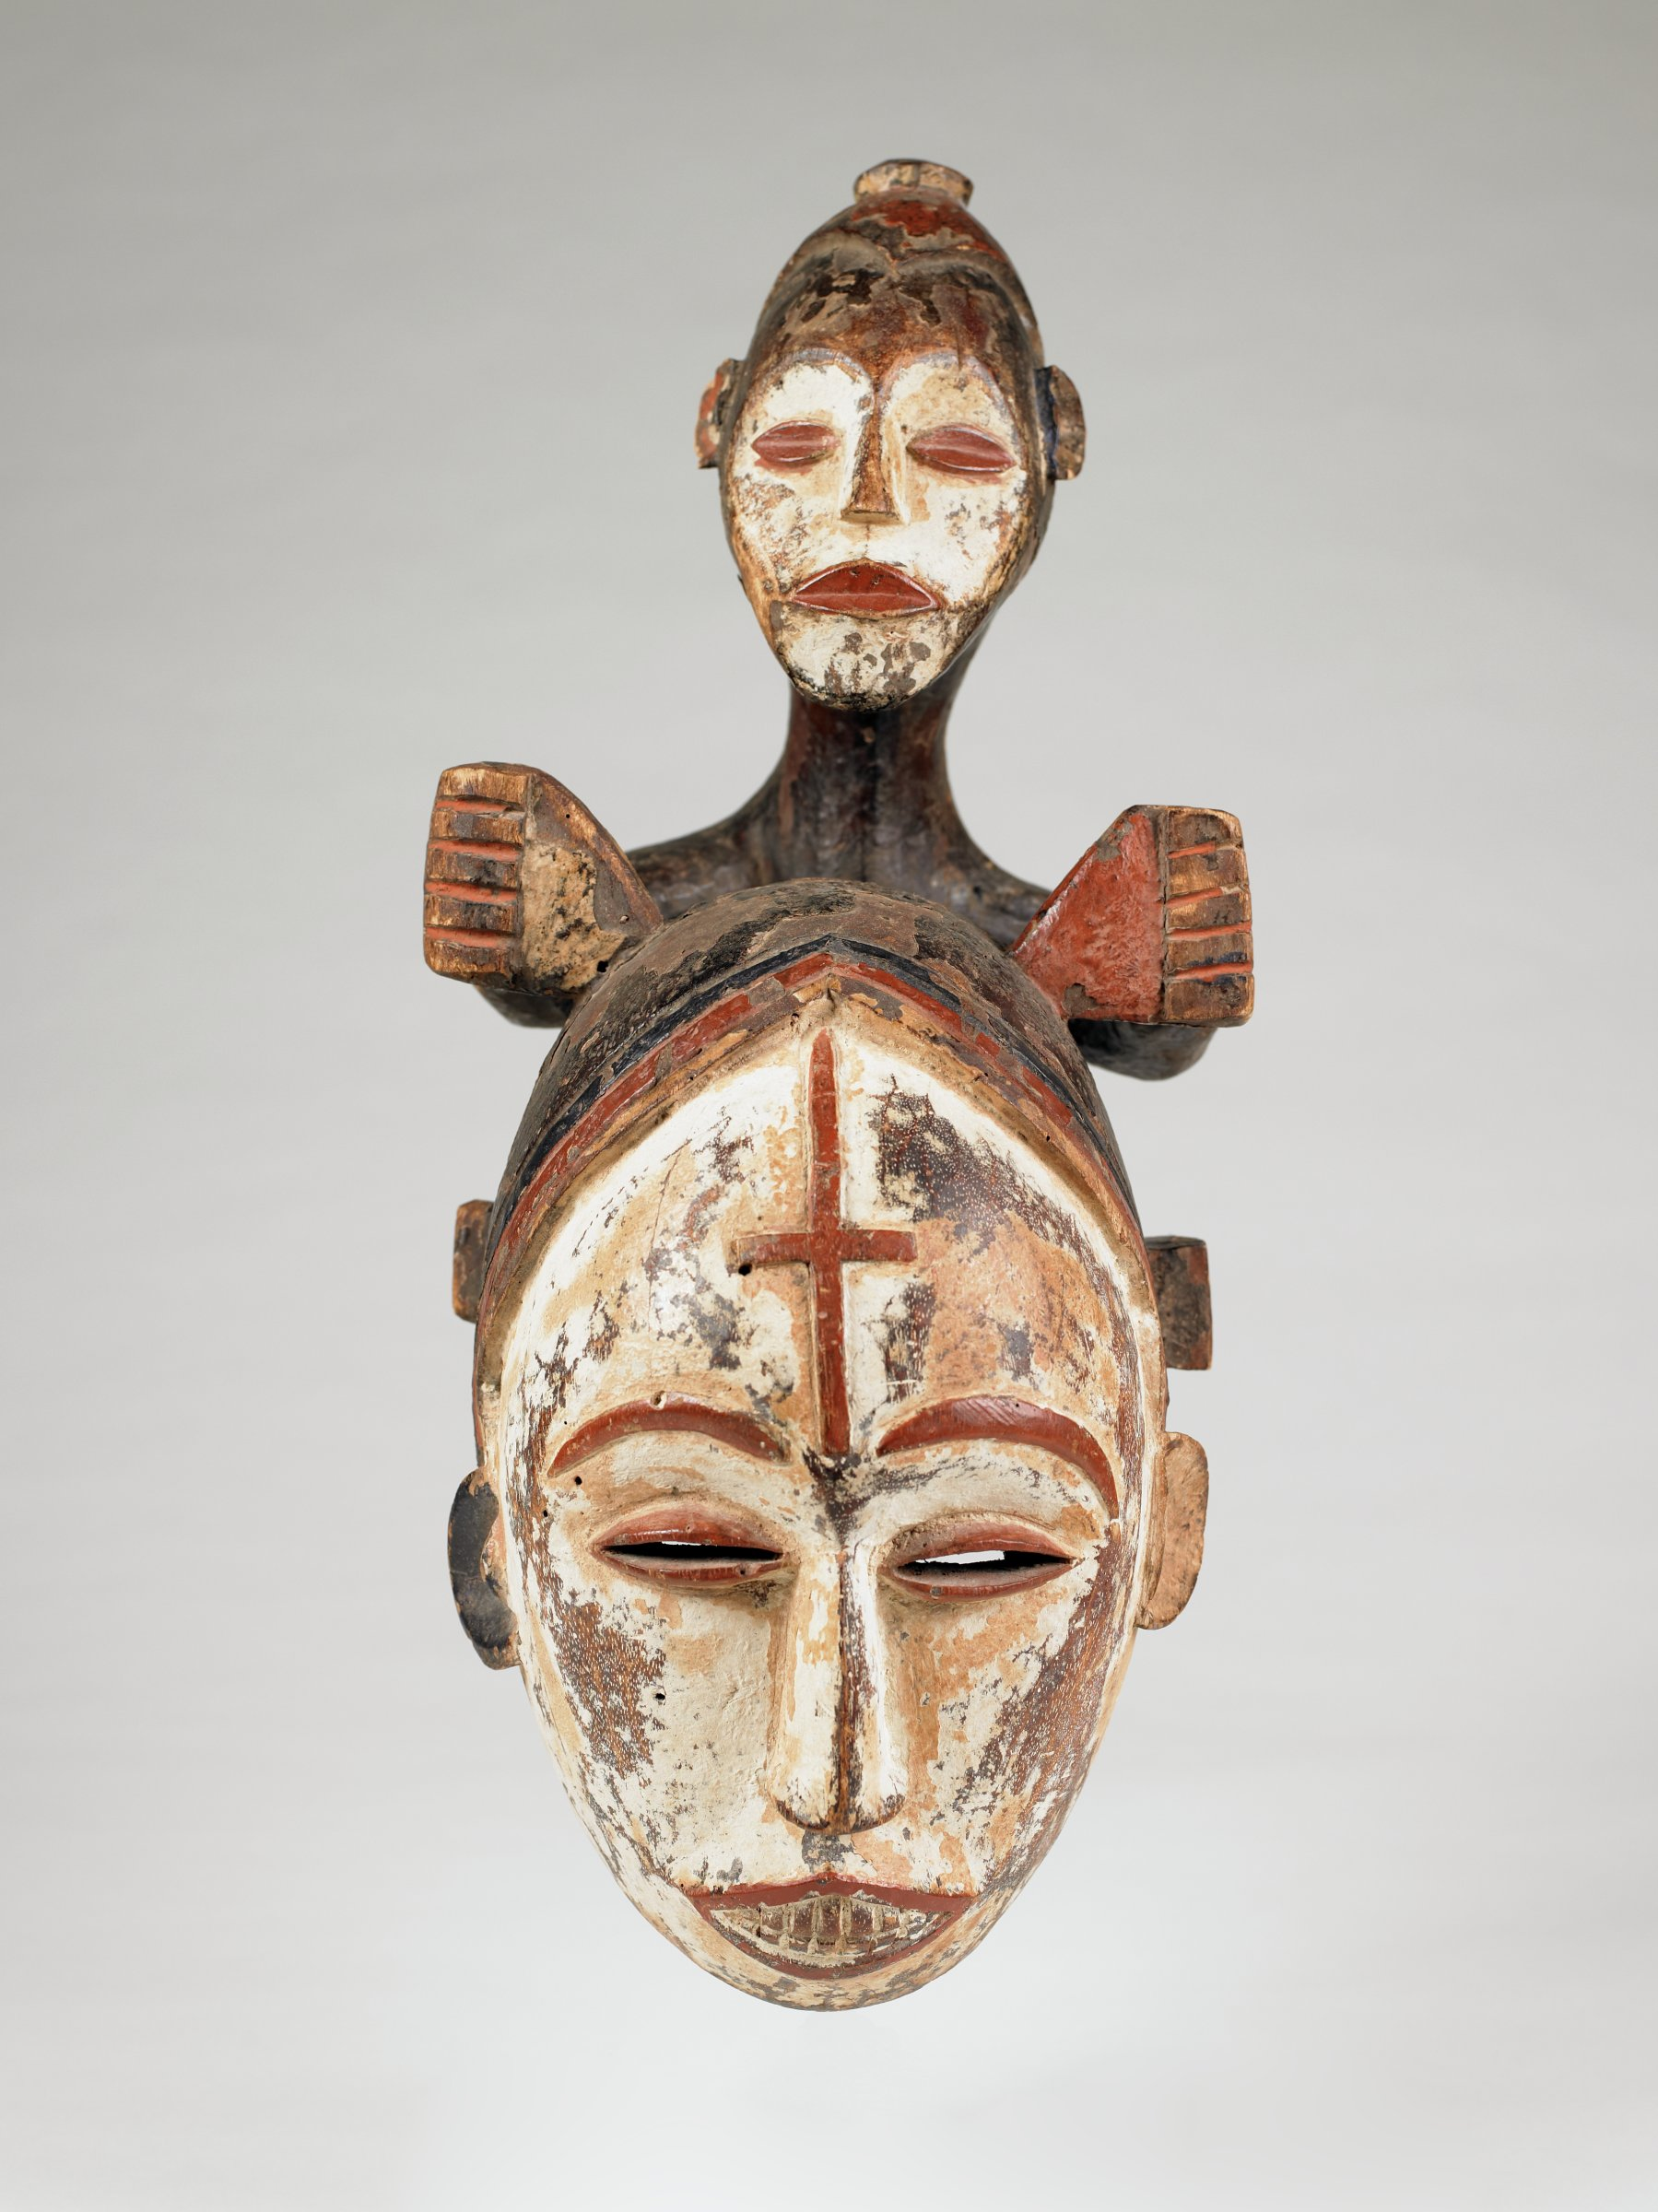 White-faced helmet mask of woman's face and head, surmounted by child figure